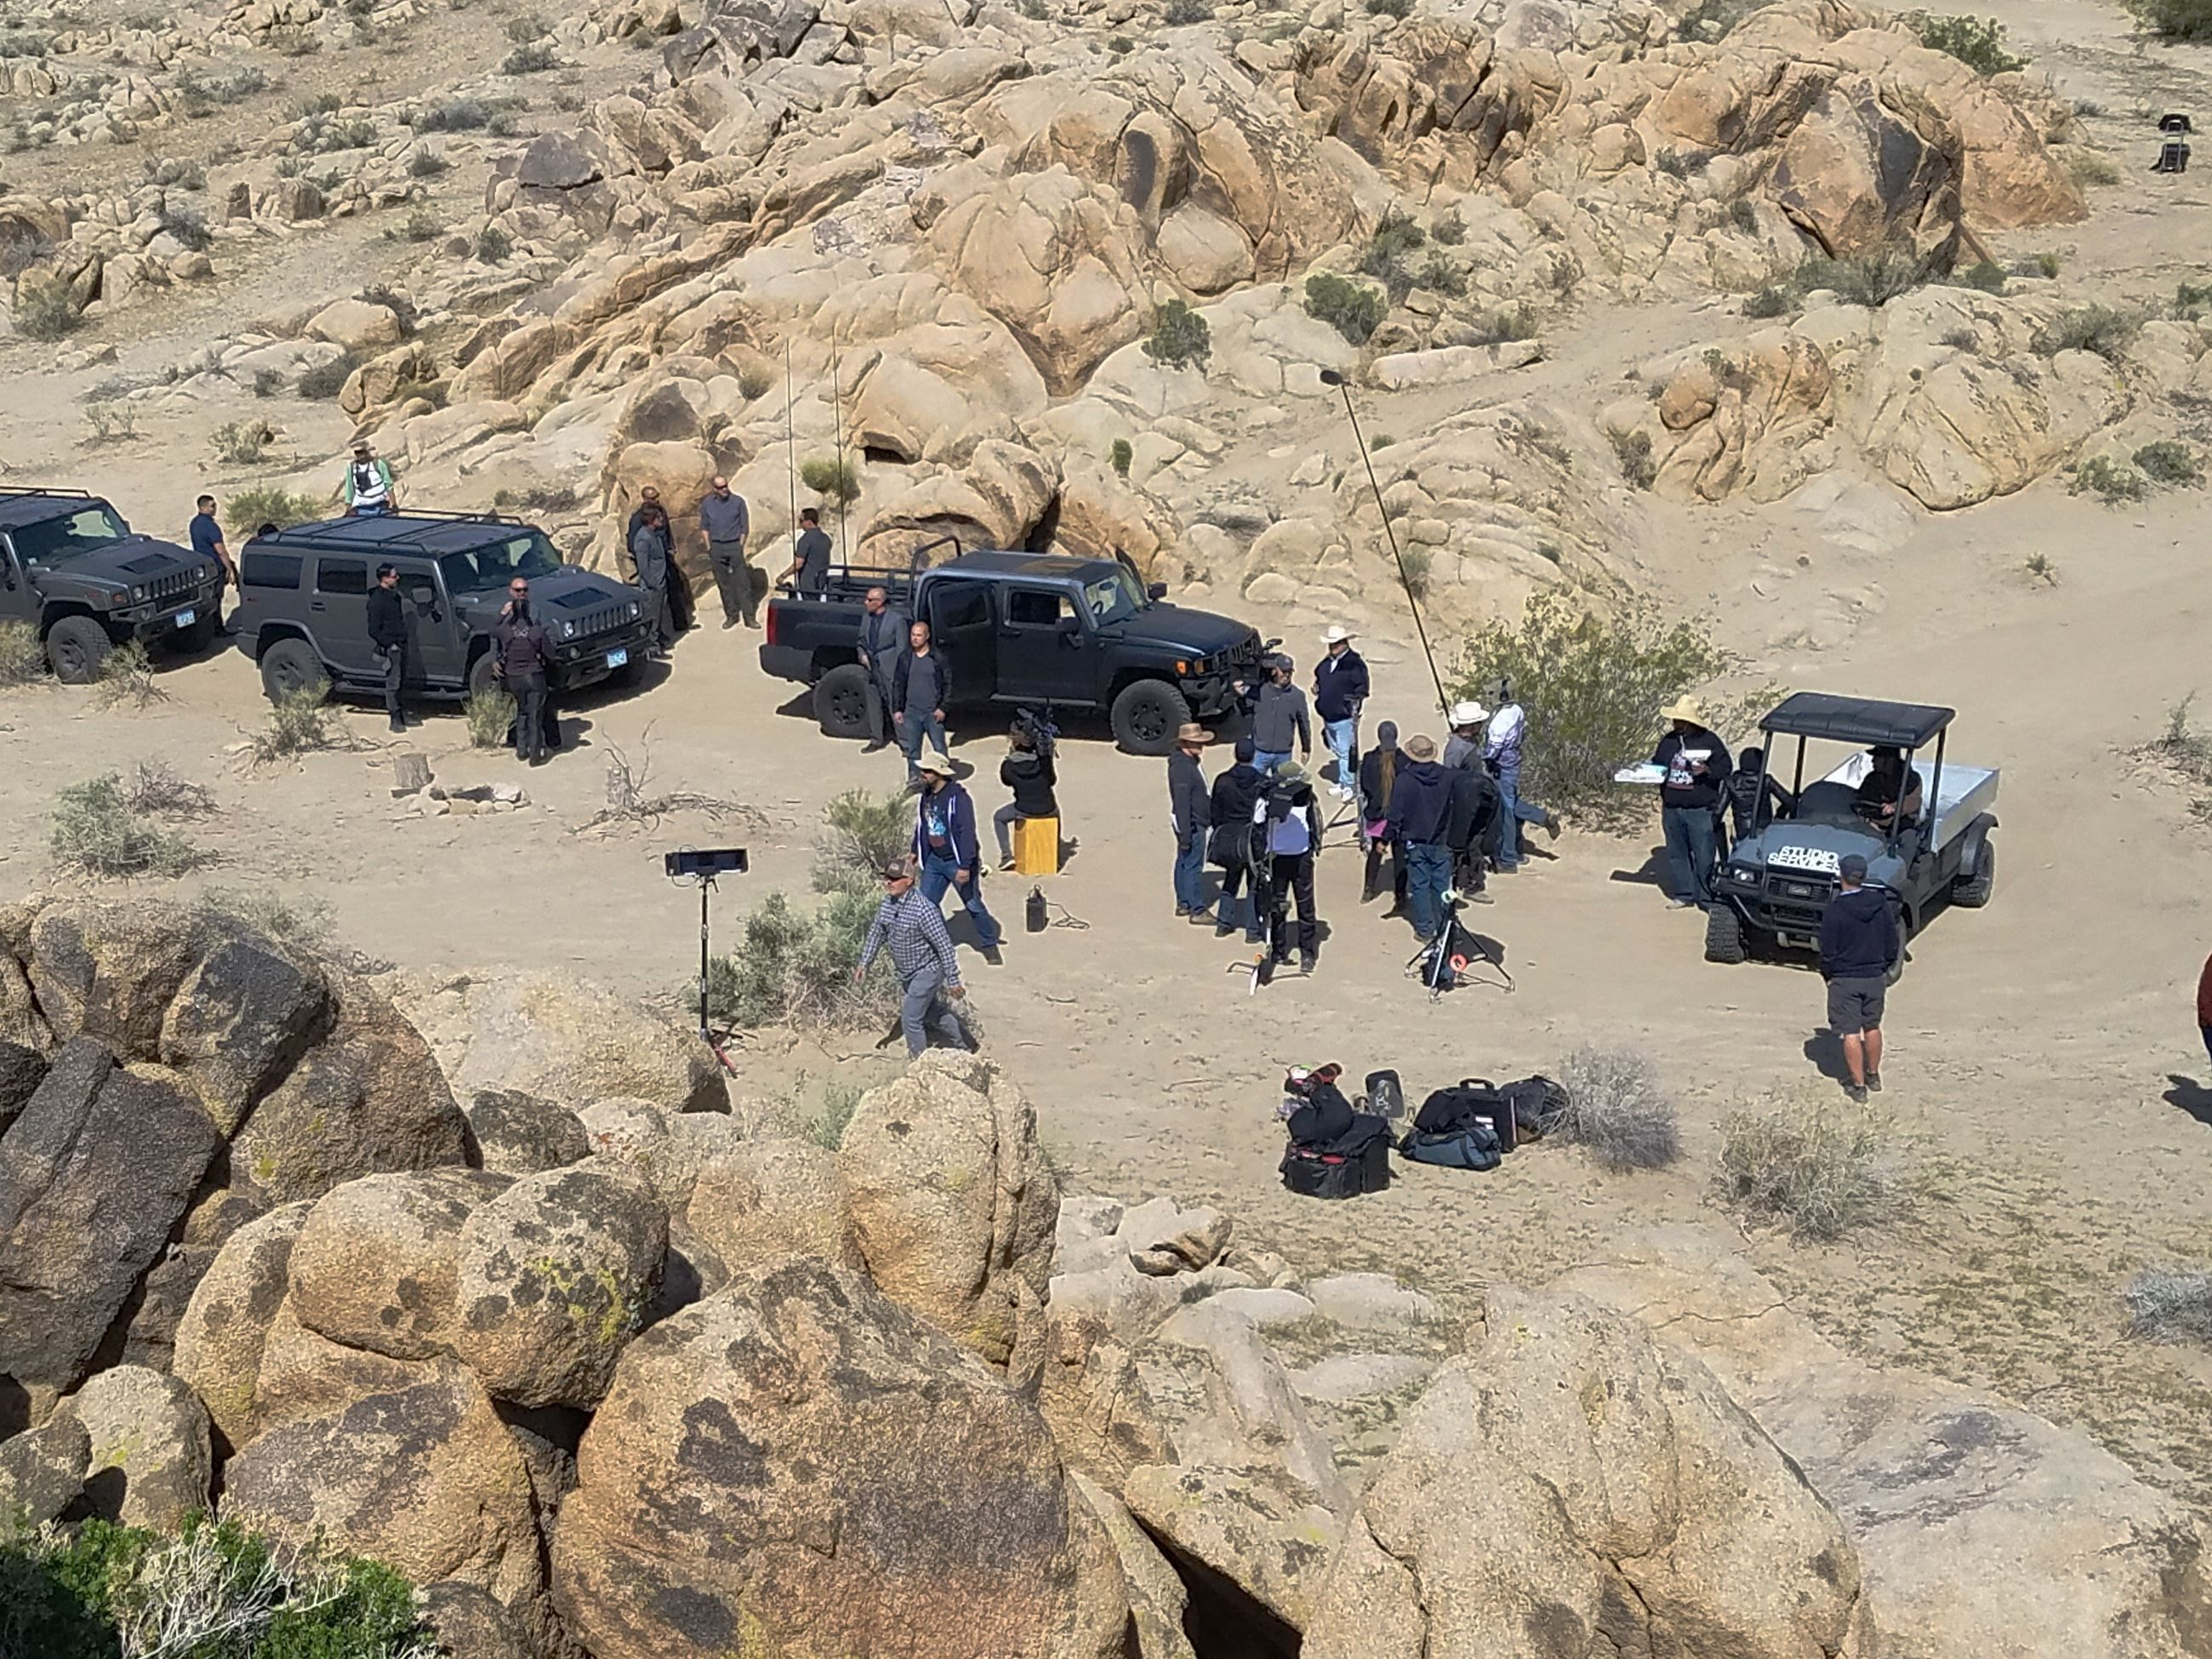 Long shot of crew filming by the rocks in the desert